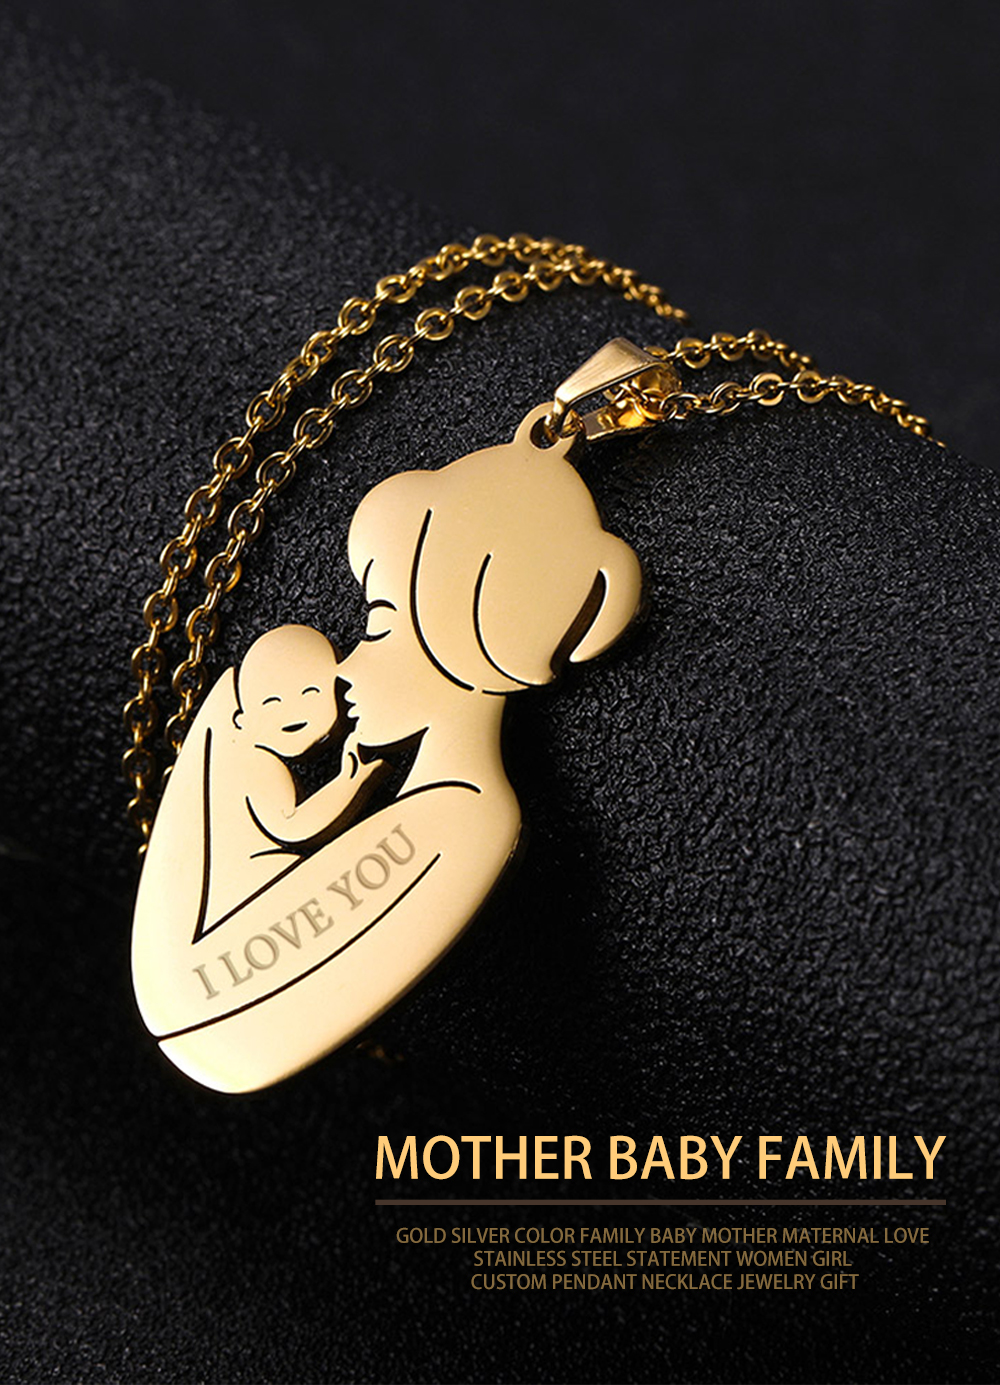 Personalized Custom Engrave Name Necklace Jewelry Family Baby Pregnant Gift For Mother Gold Color Stainless Steel Women Birth